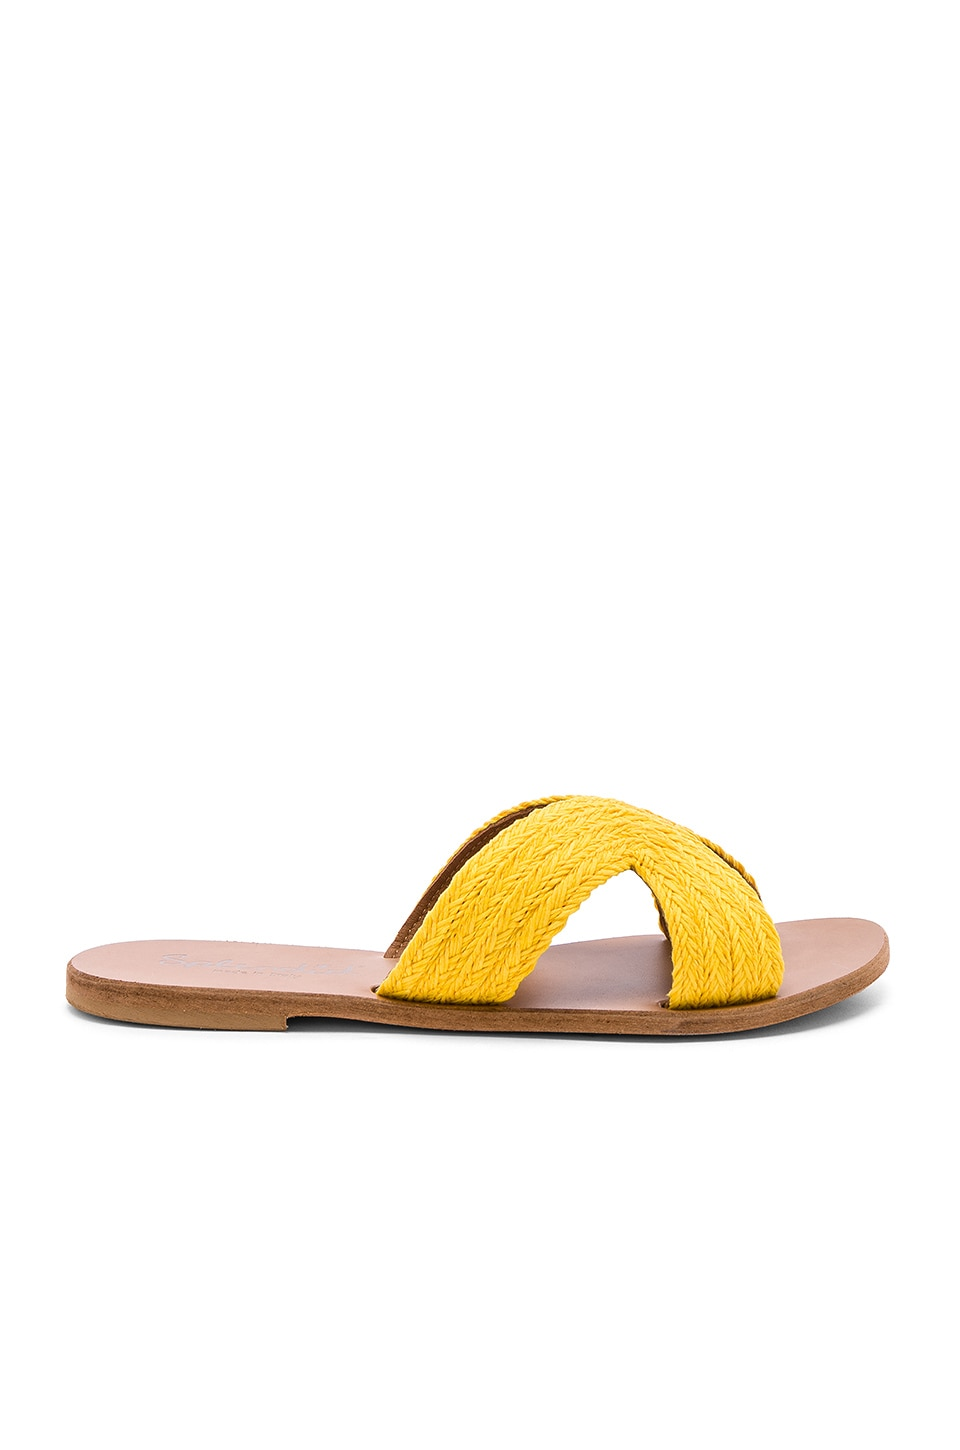 Splendid Sydney Sandal in Yellow